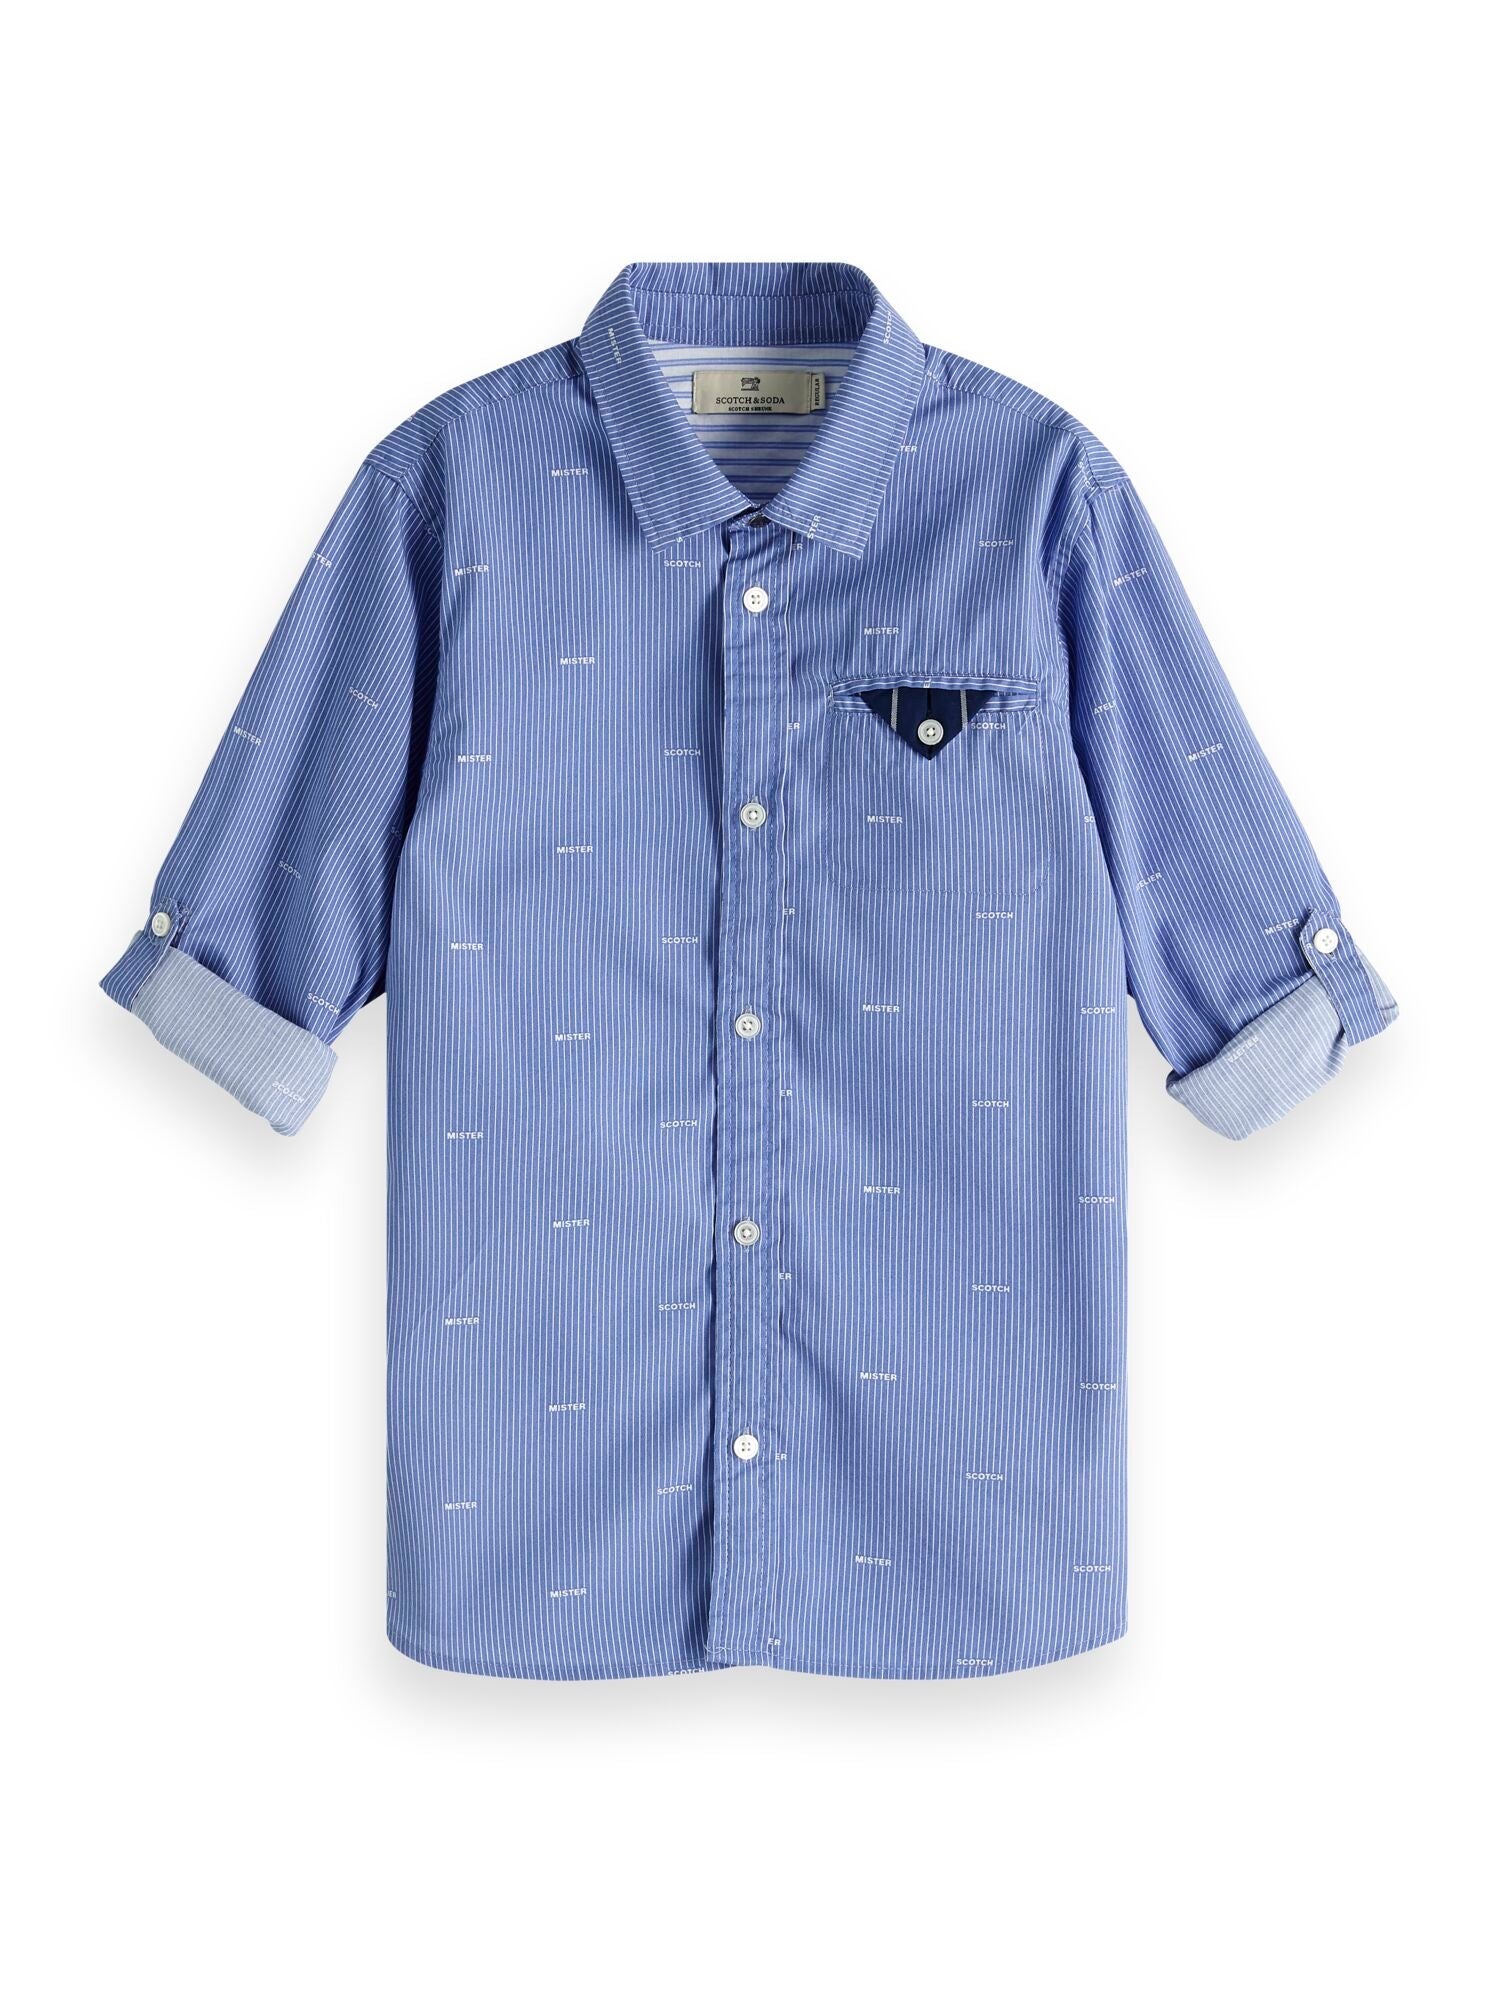 Scotch Shrunk Blue Collared Long Sleeve Shirt